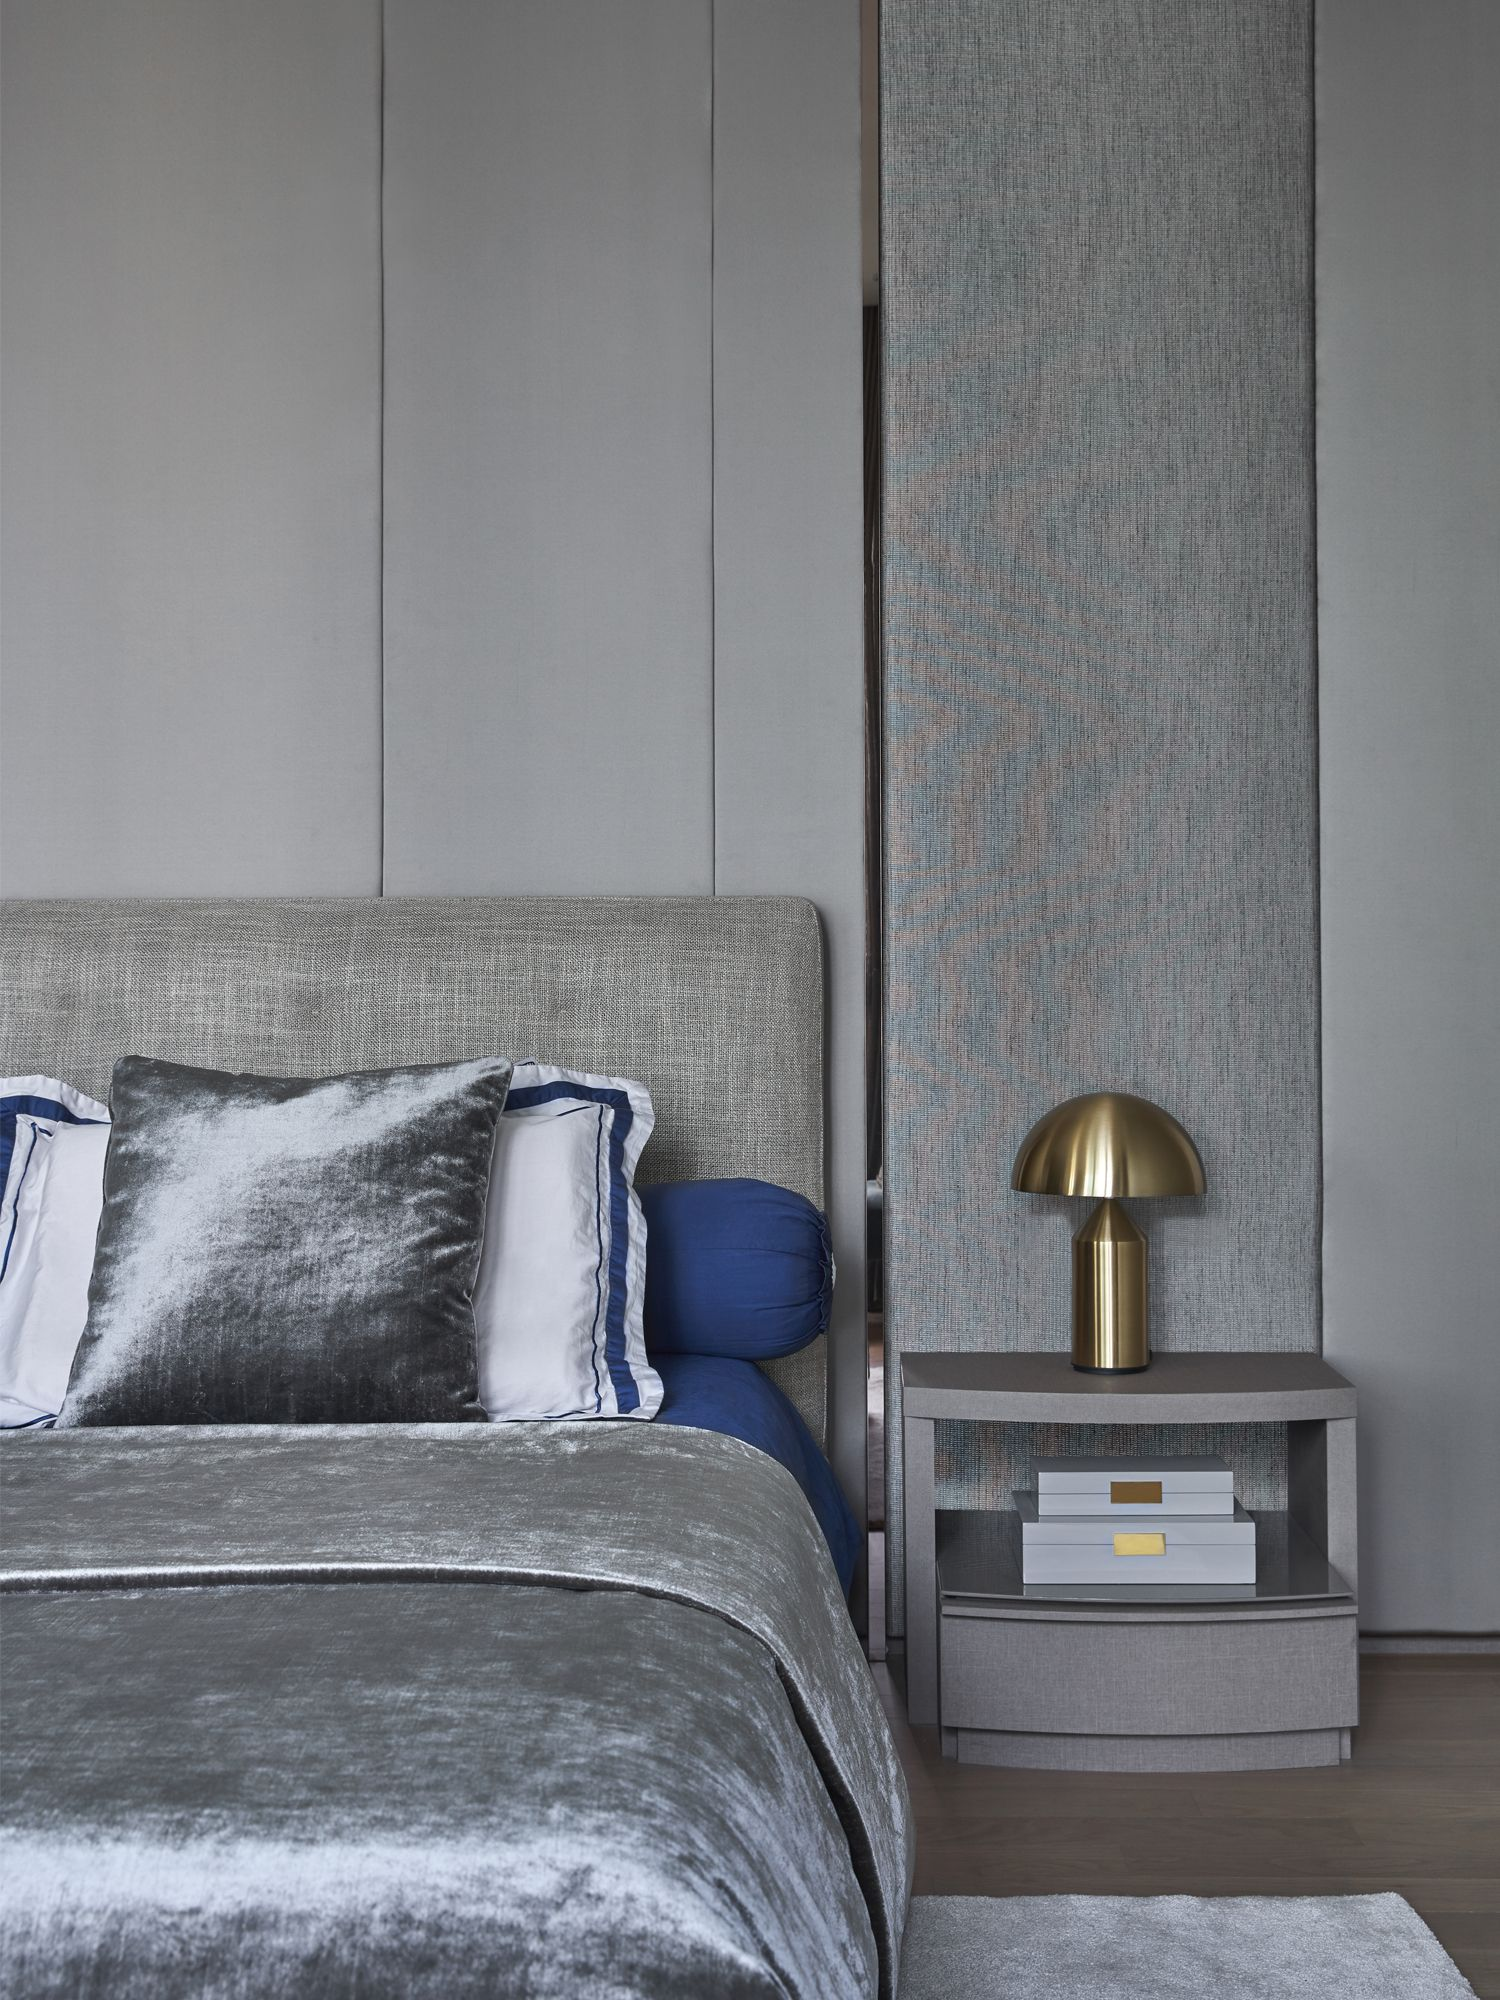 The use of upholstered panels in shades of grey and chrome accents is luxurious yet understated